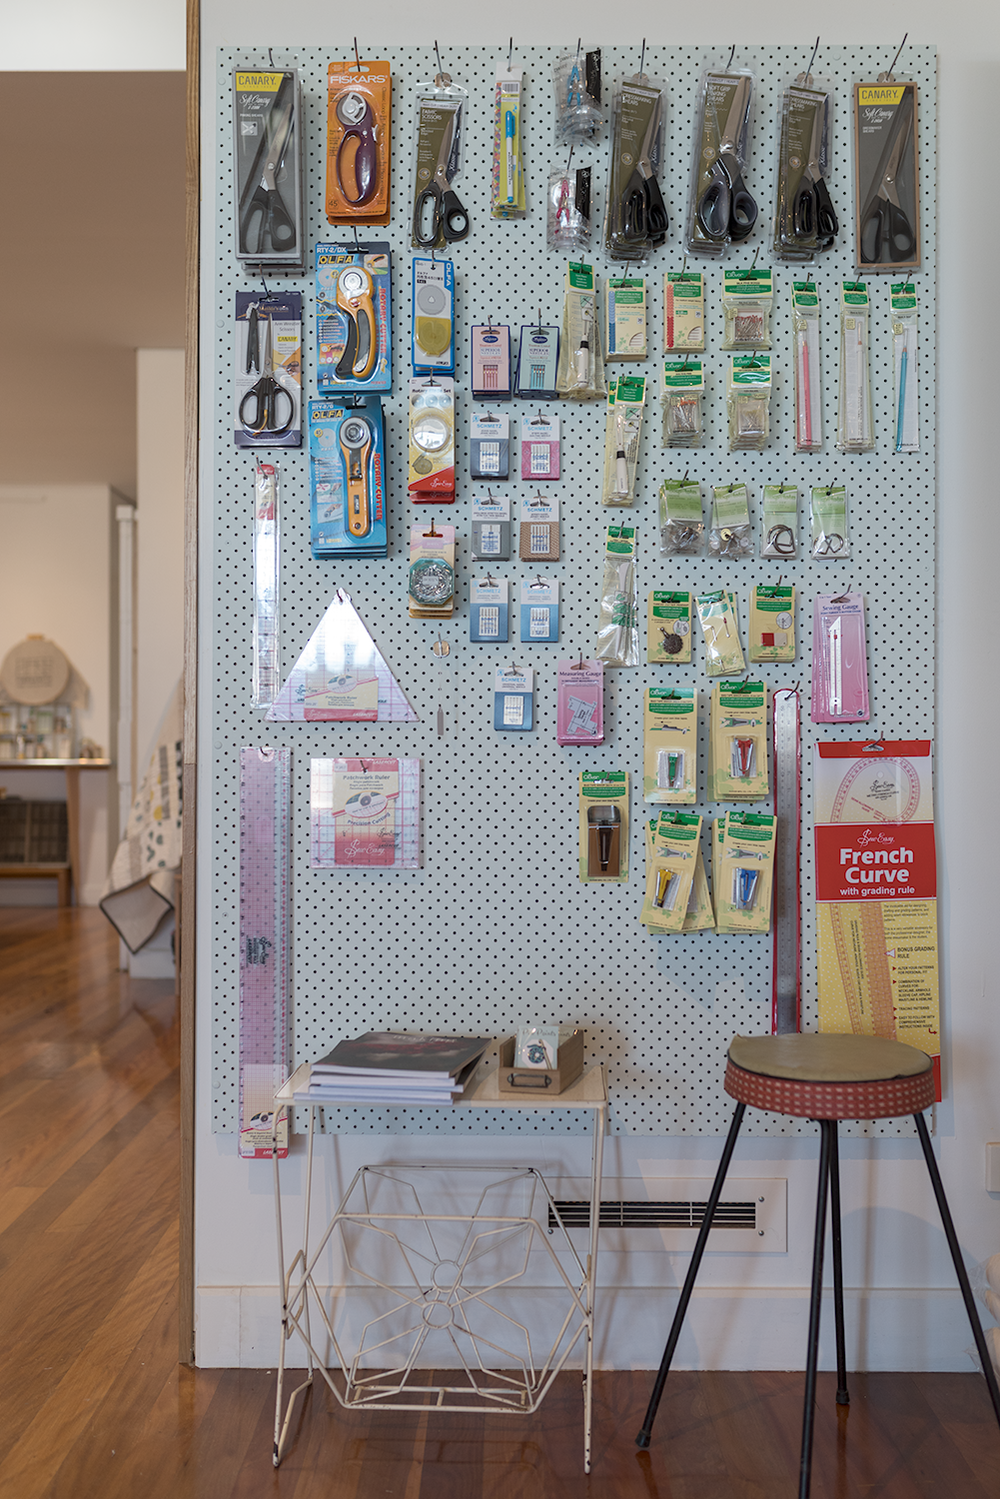 Pinboard of goodness, with lots of Clover products. Photo by Susan Fitzgerald.